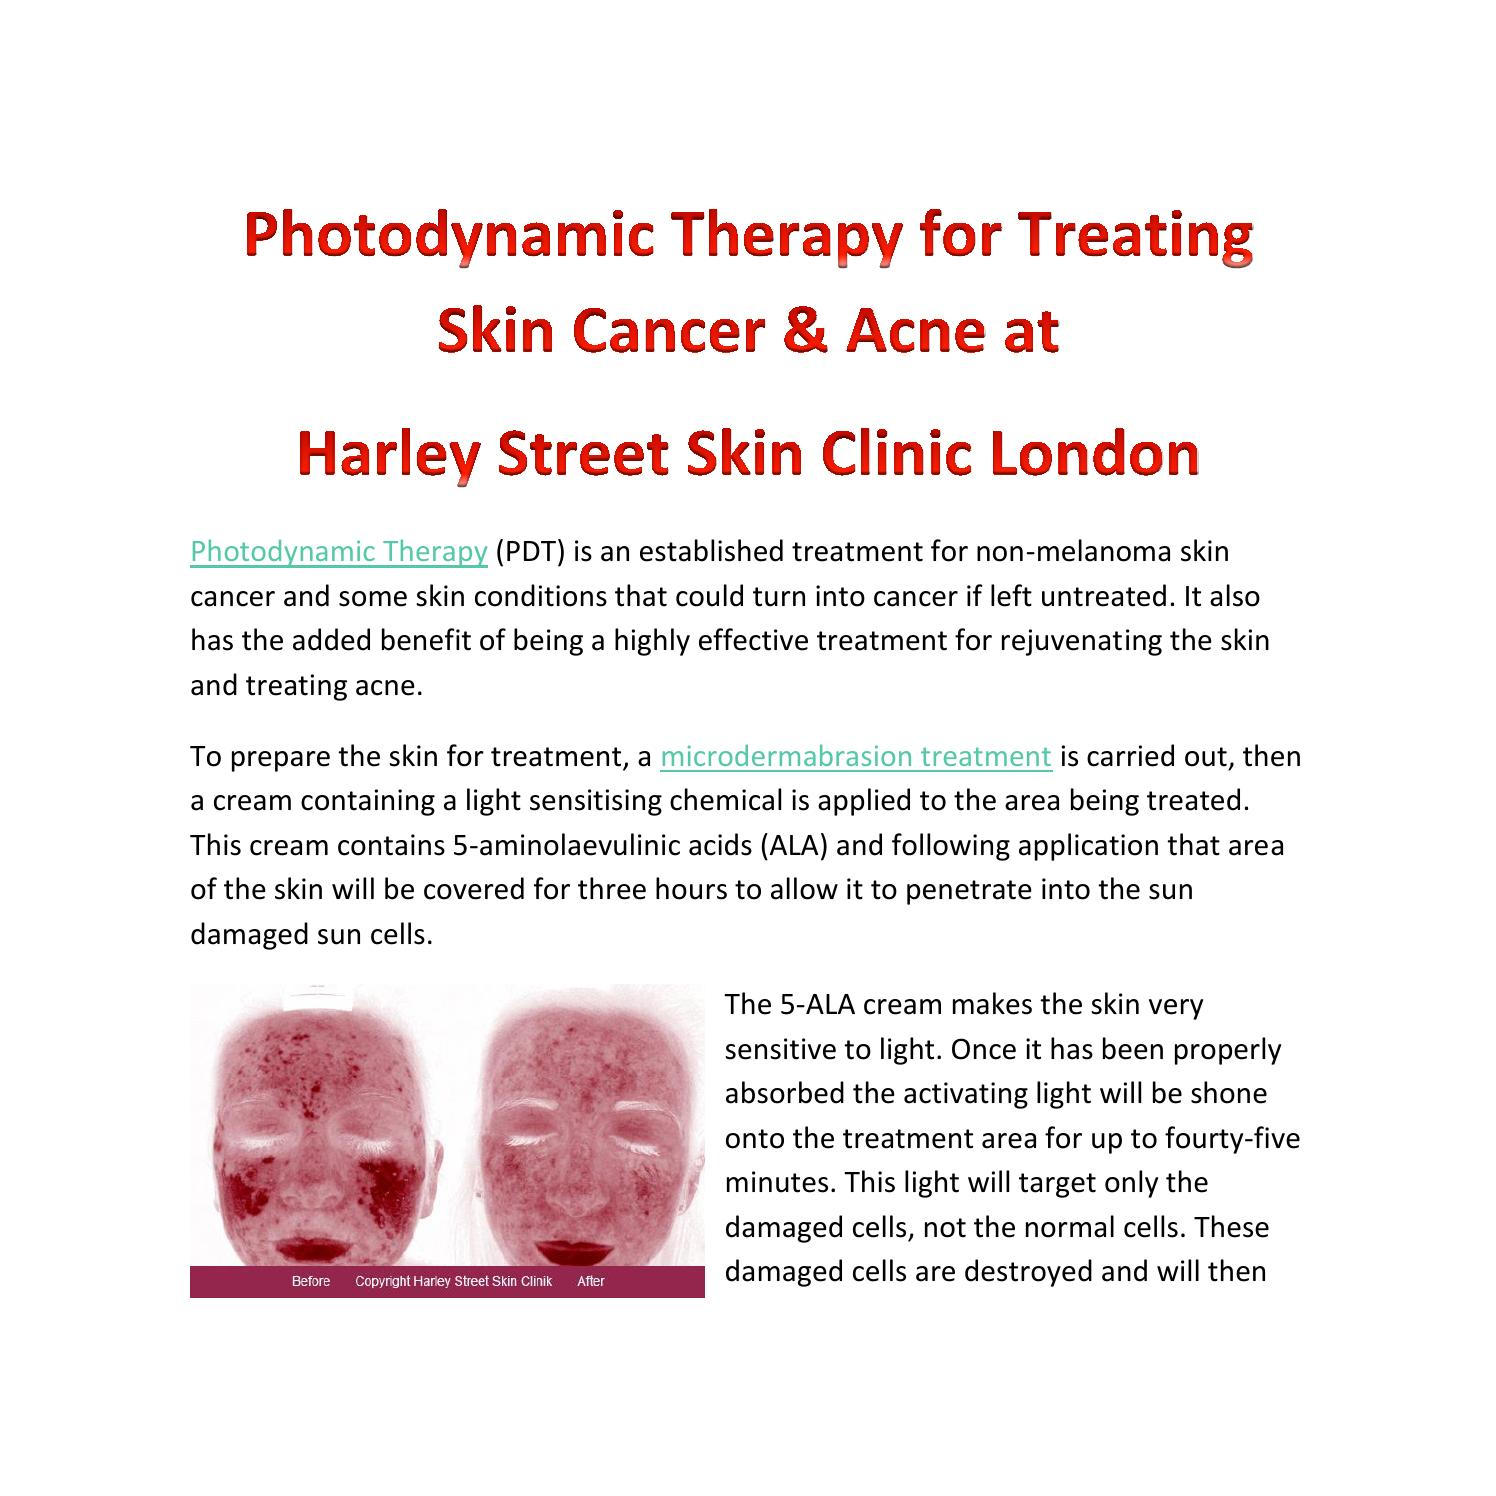 cd124814b4 Photodynamic Therapy for treating Skin Cancer and Acne at Harley Street  Skin Clinic